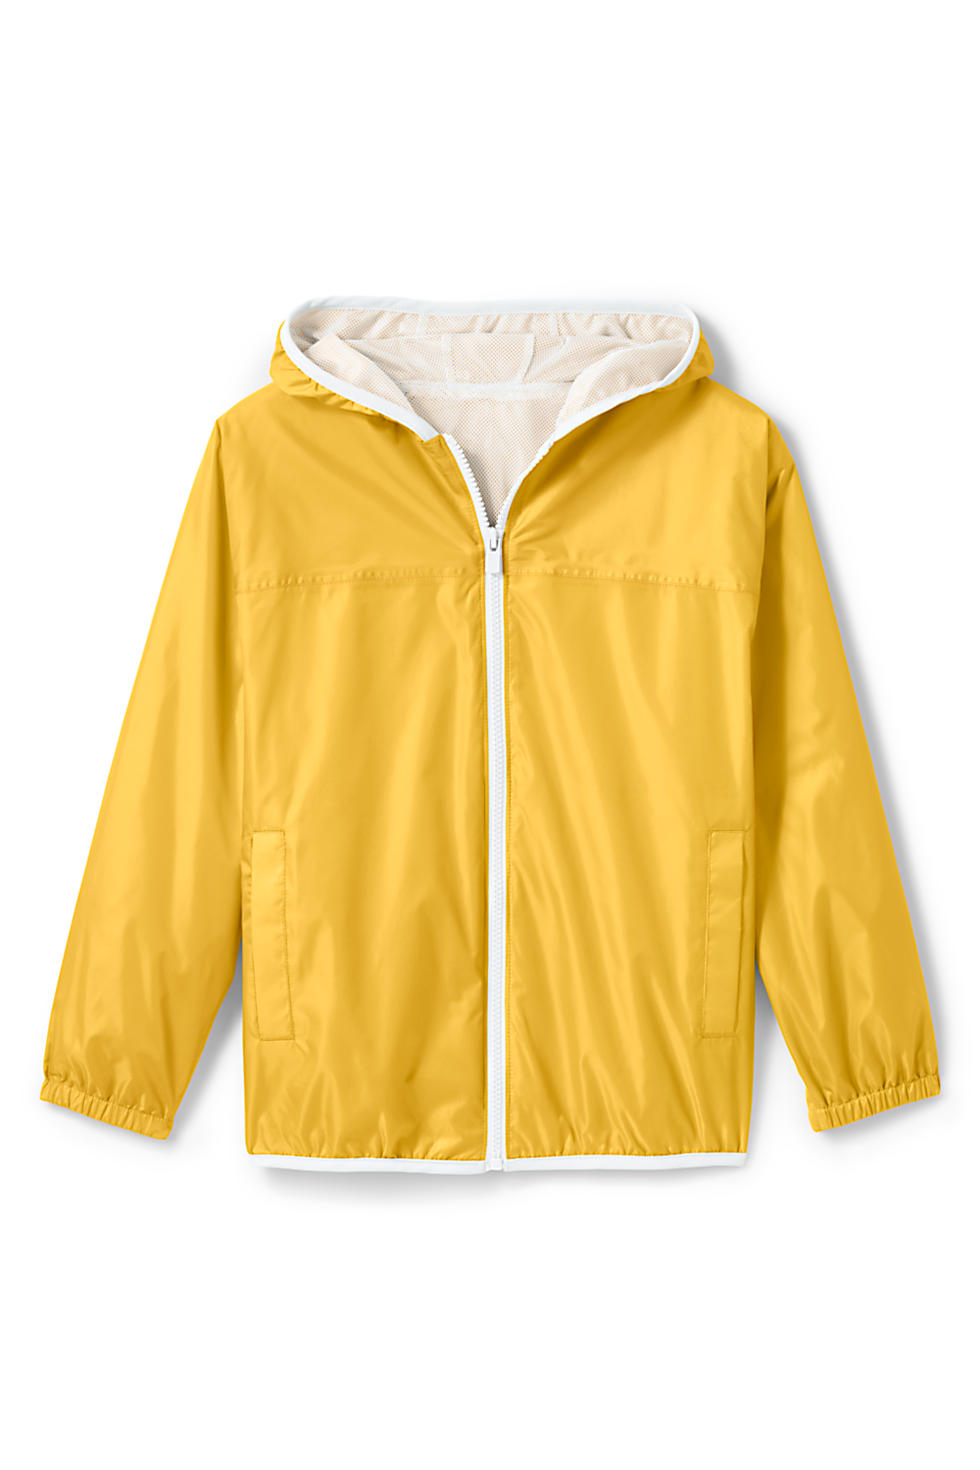 Lands End Kids Waterproof Rain Jacket (Atlas Yellow)